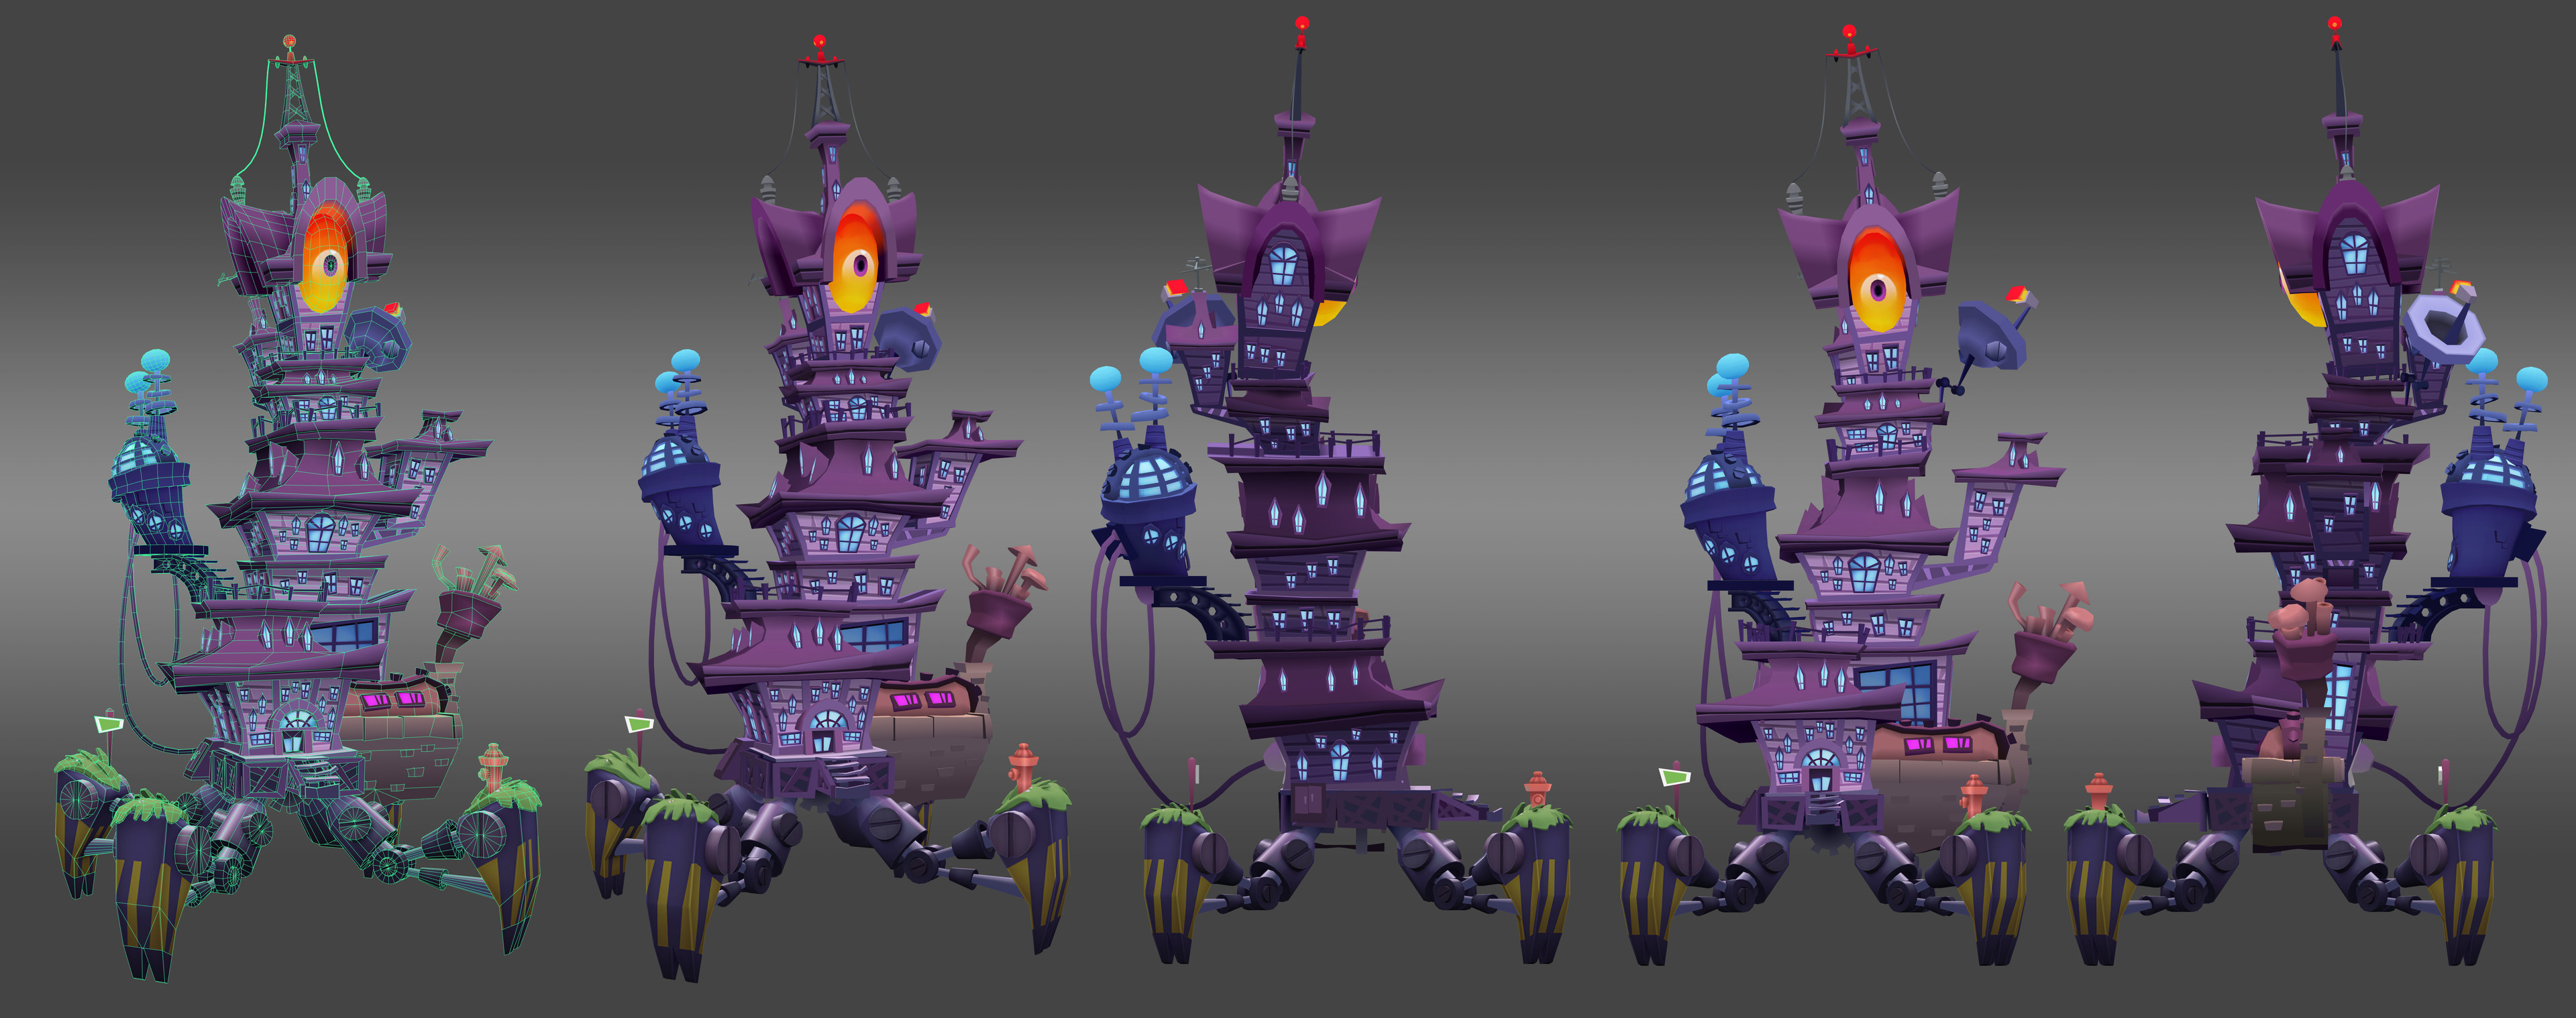 Zomboss Tower: Game asset - regular colors